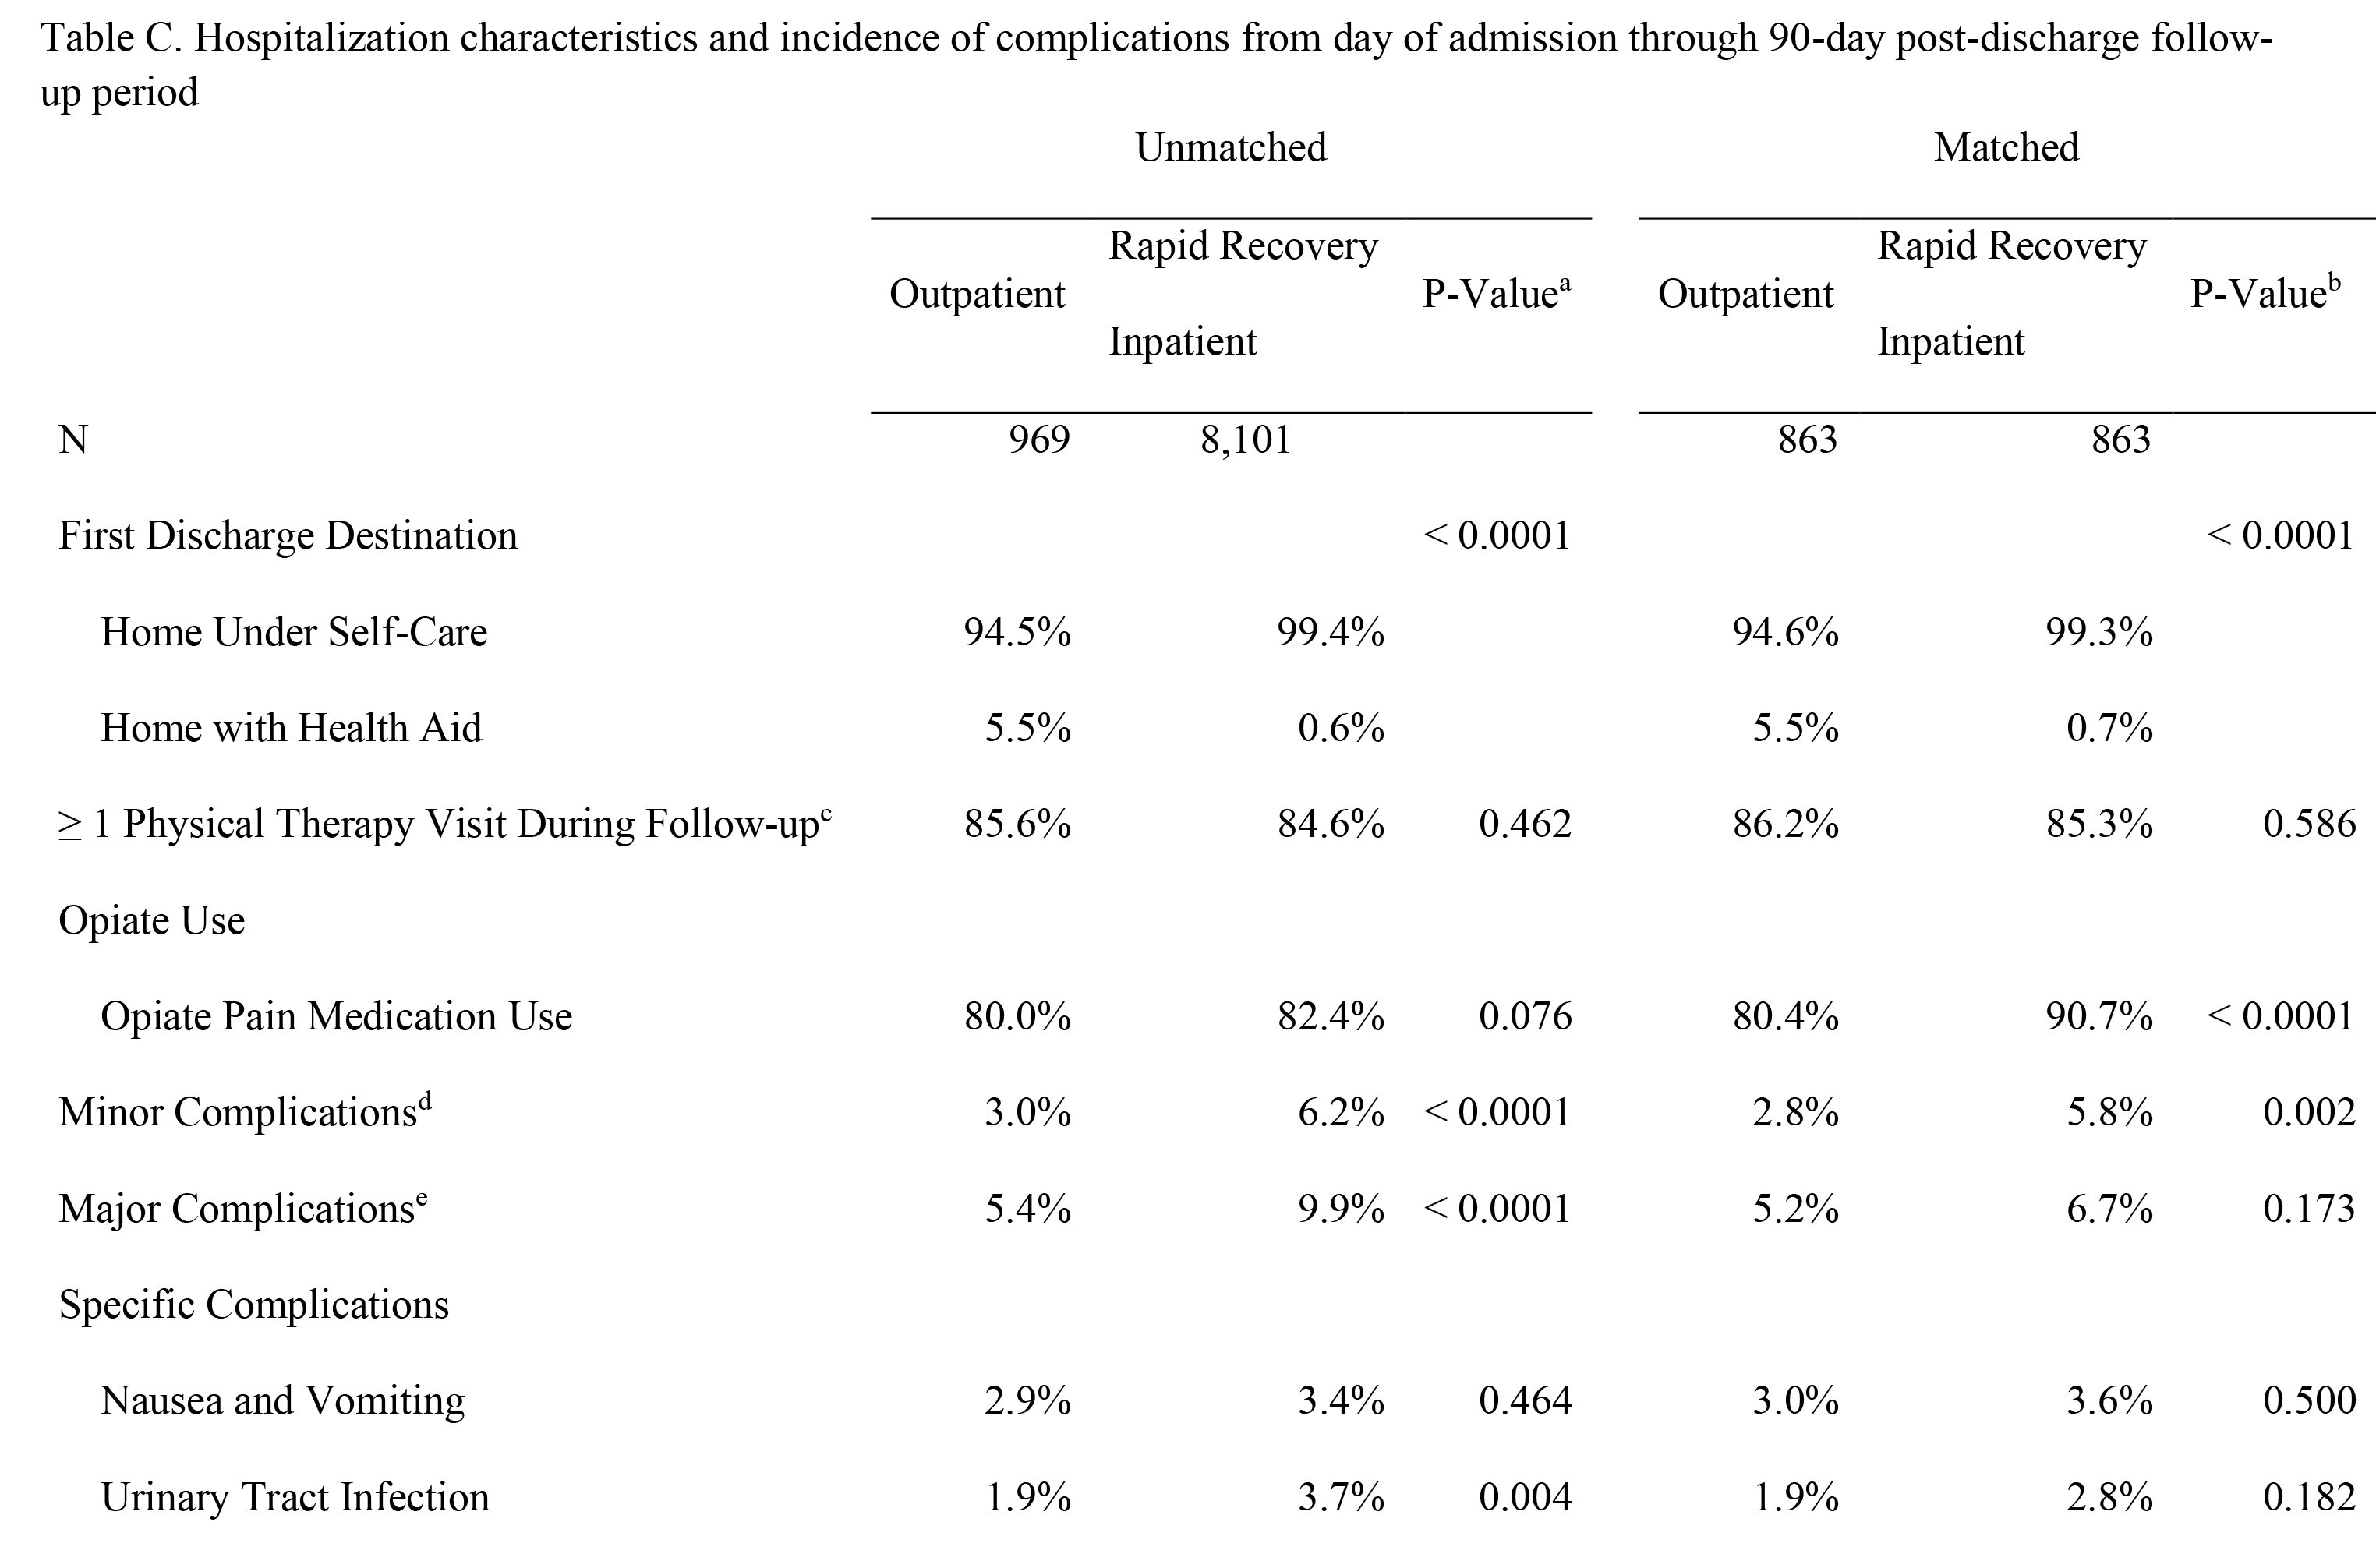 Hospitalization characteristics and incidence of complications from day of admission through 90-day post-discharge follow-up period